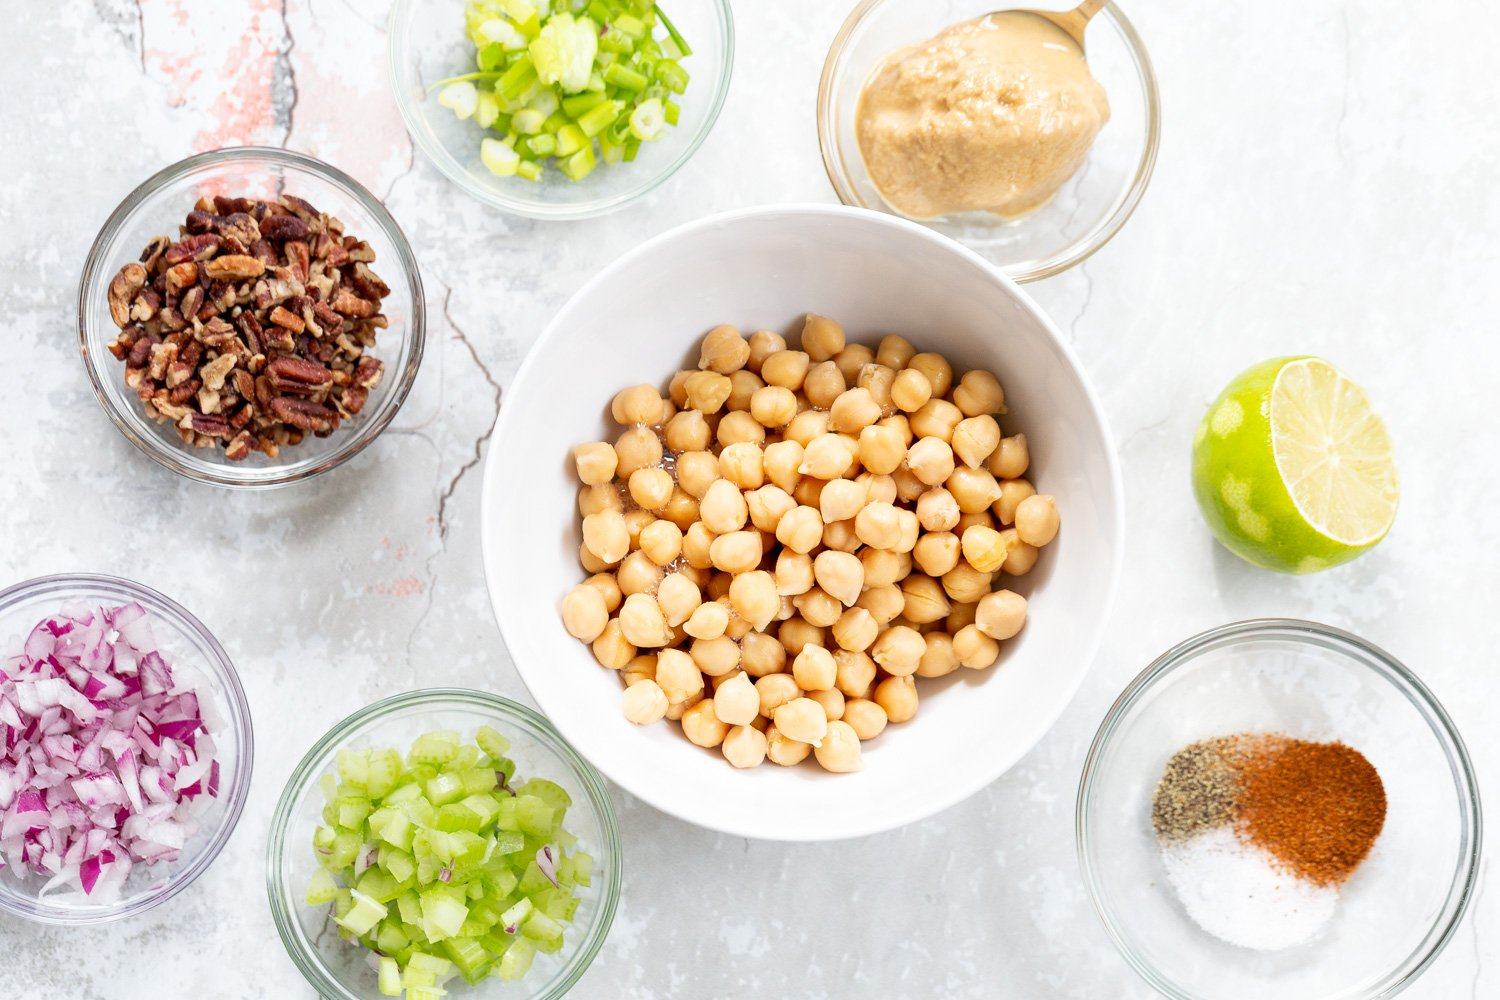 Ingredients for our Chickpea Tahini Salad Sandwich in Bowls